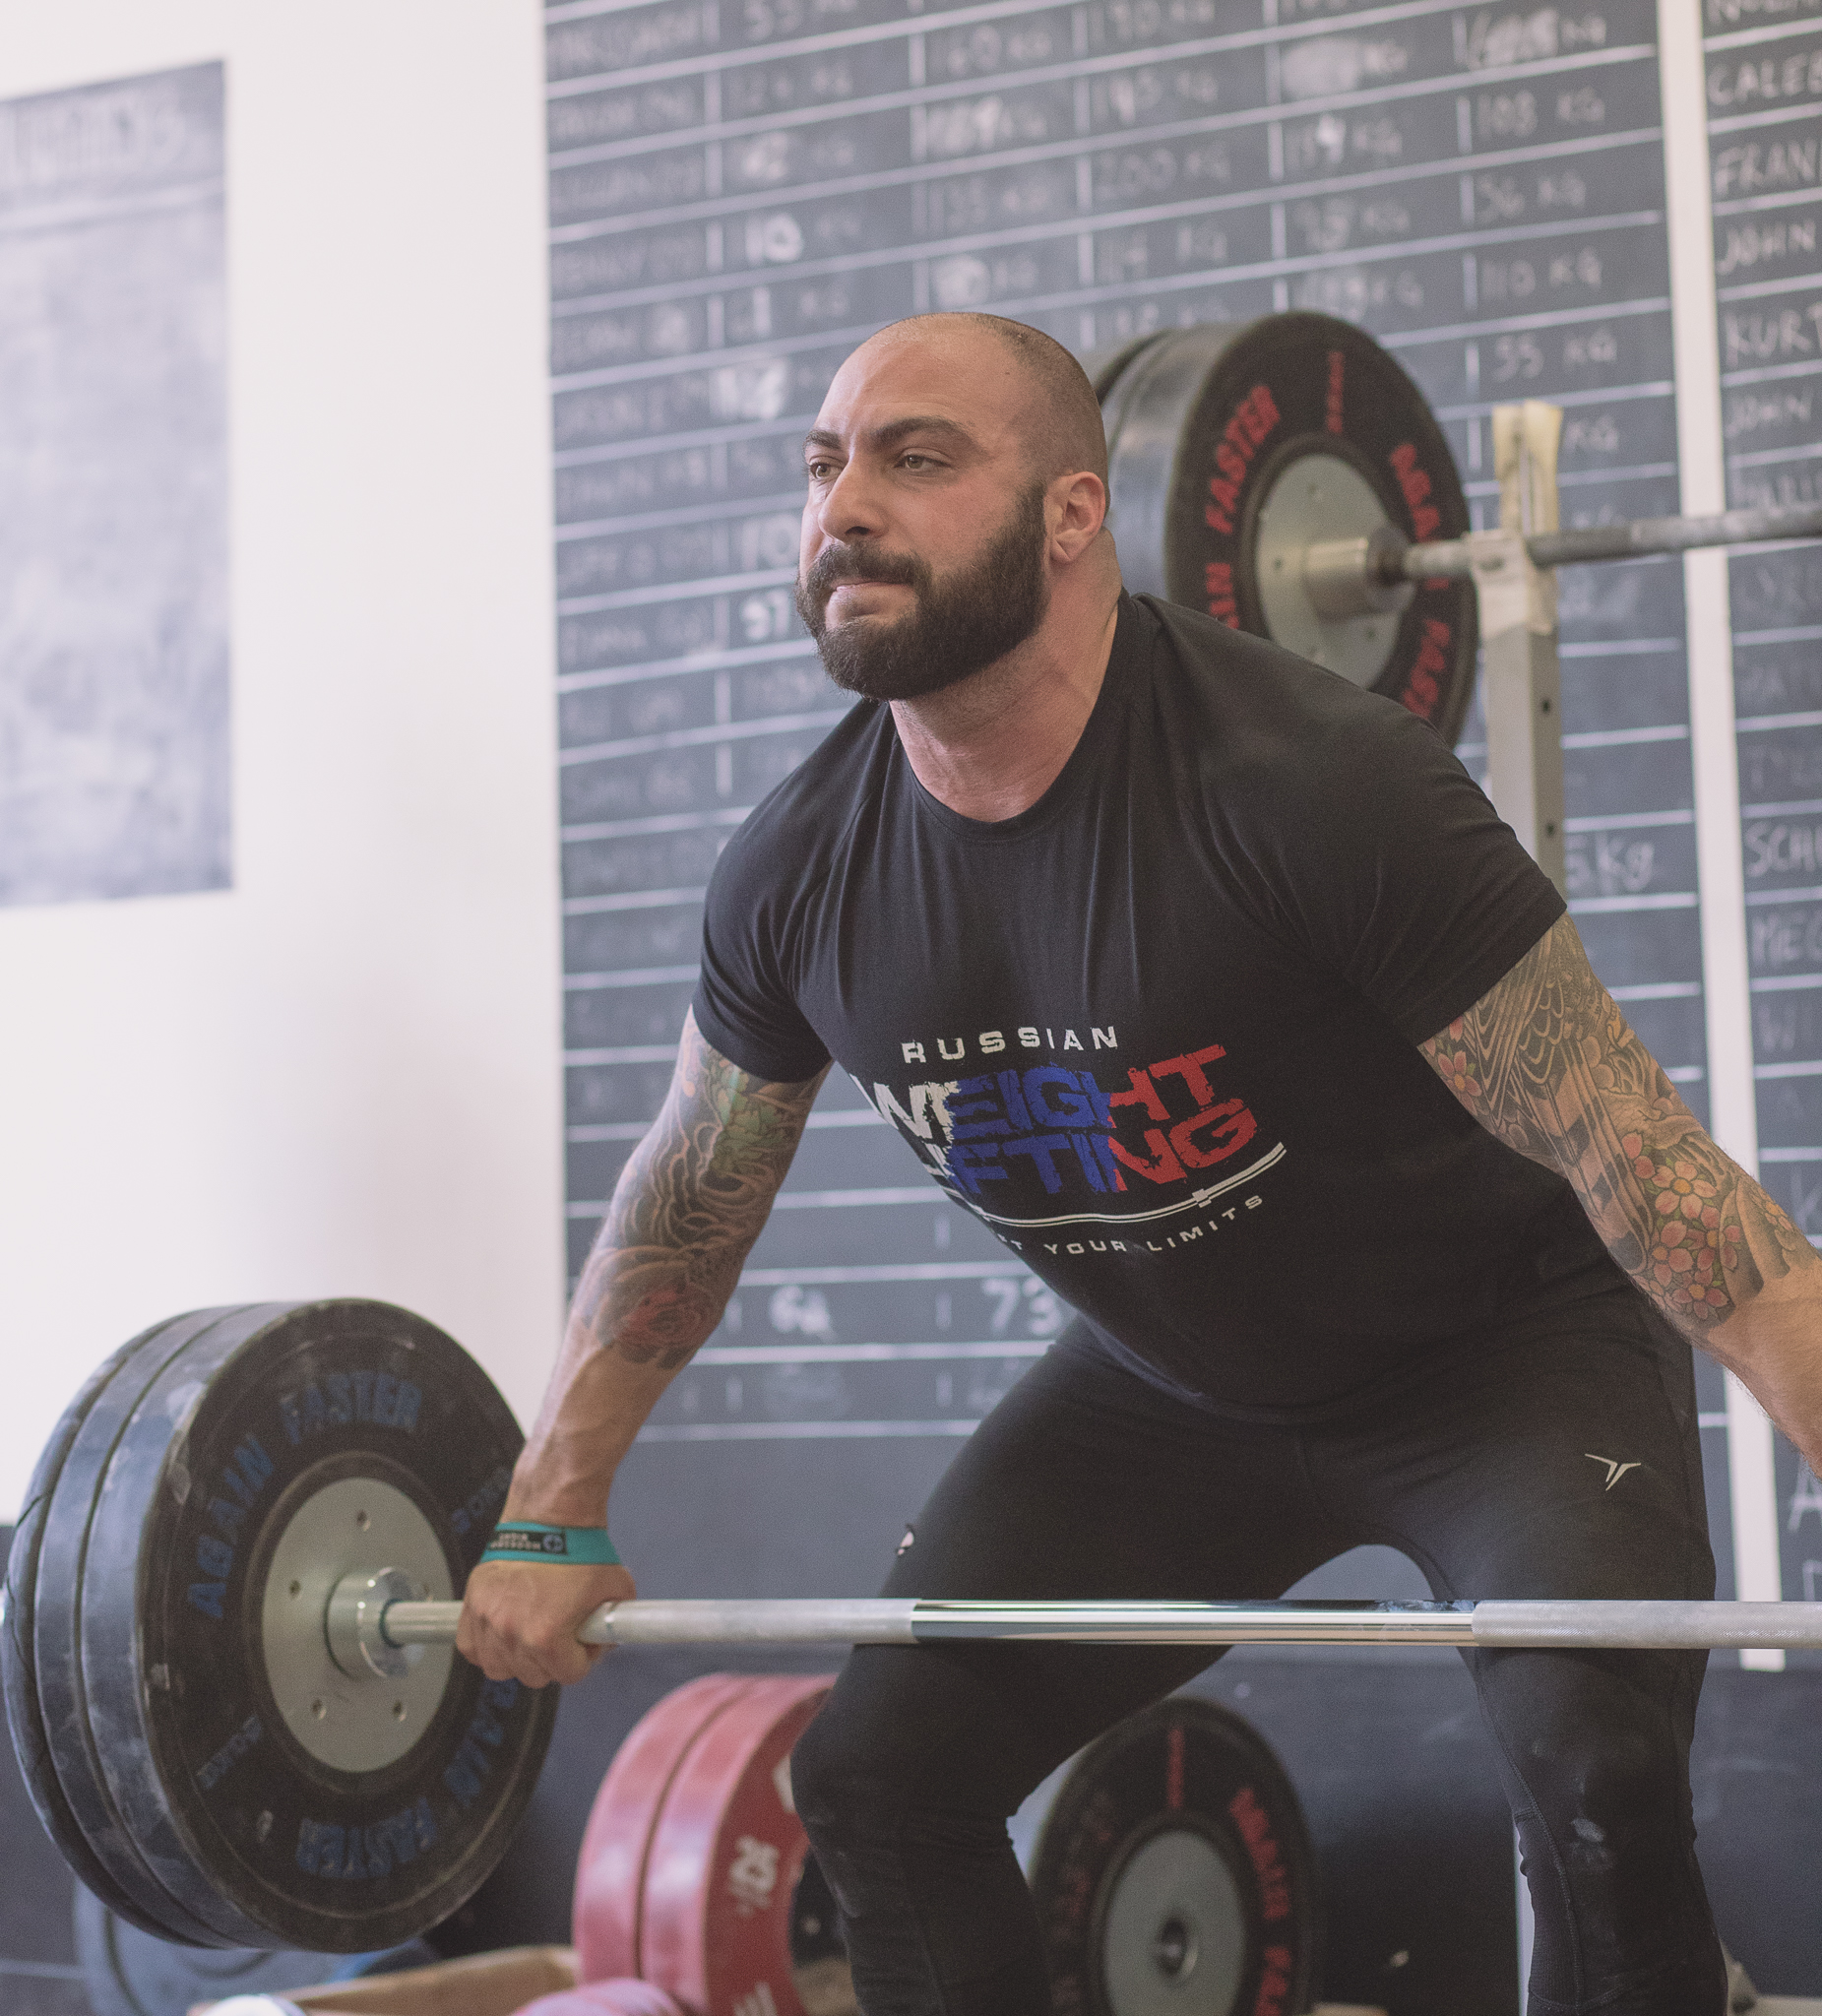 james-wright-weightlifting-coach-2.jpg